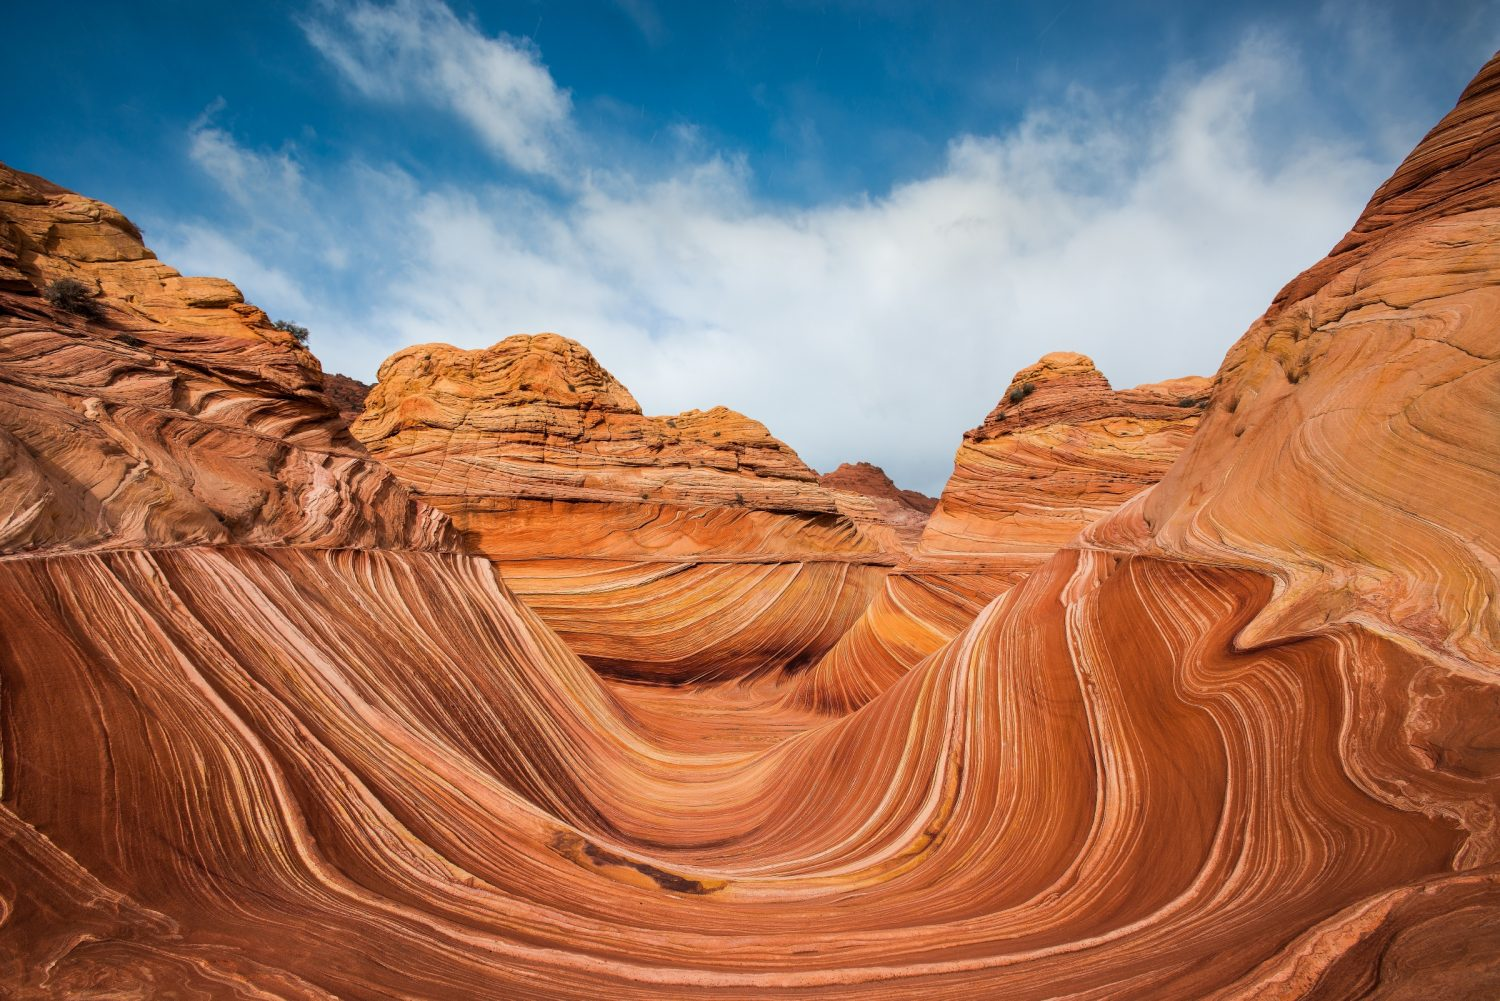 The Wave is a colourful sandstone rock formation in Arizona